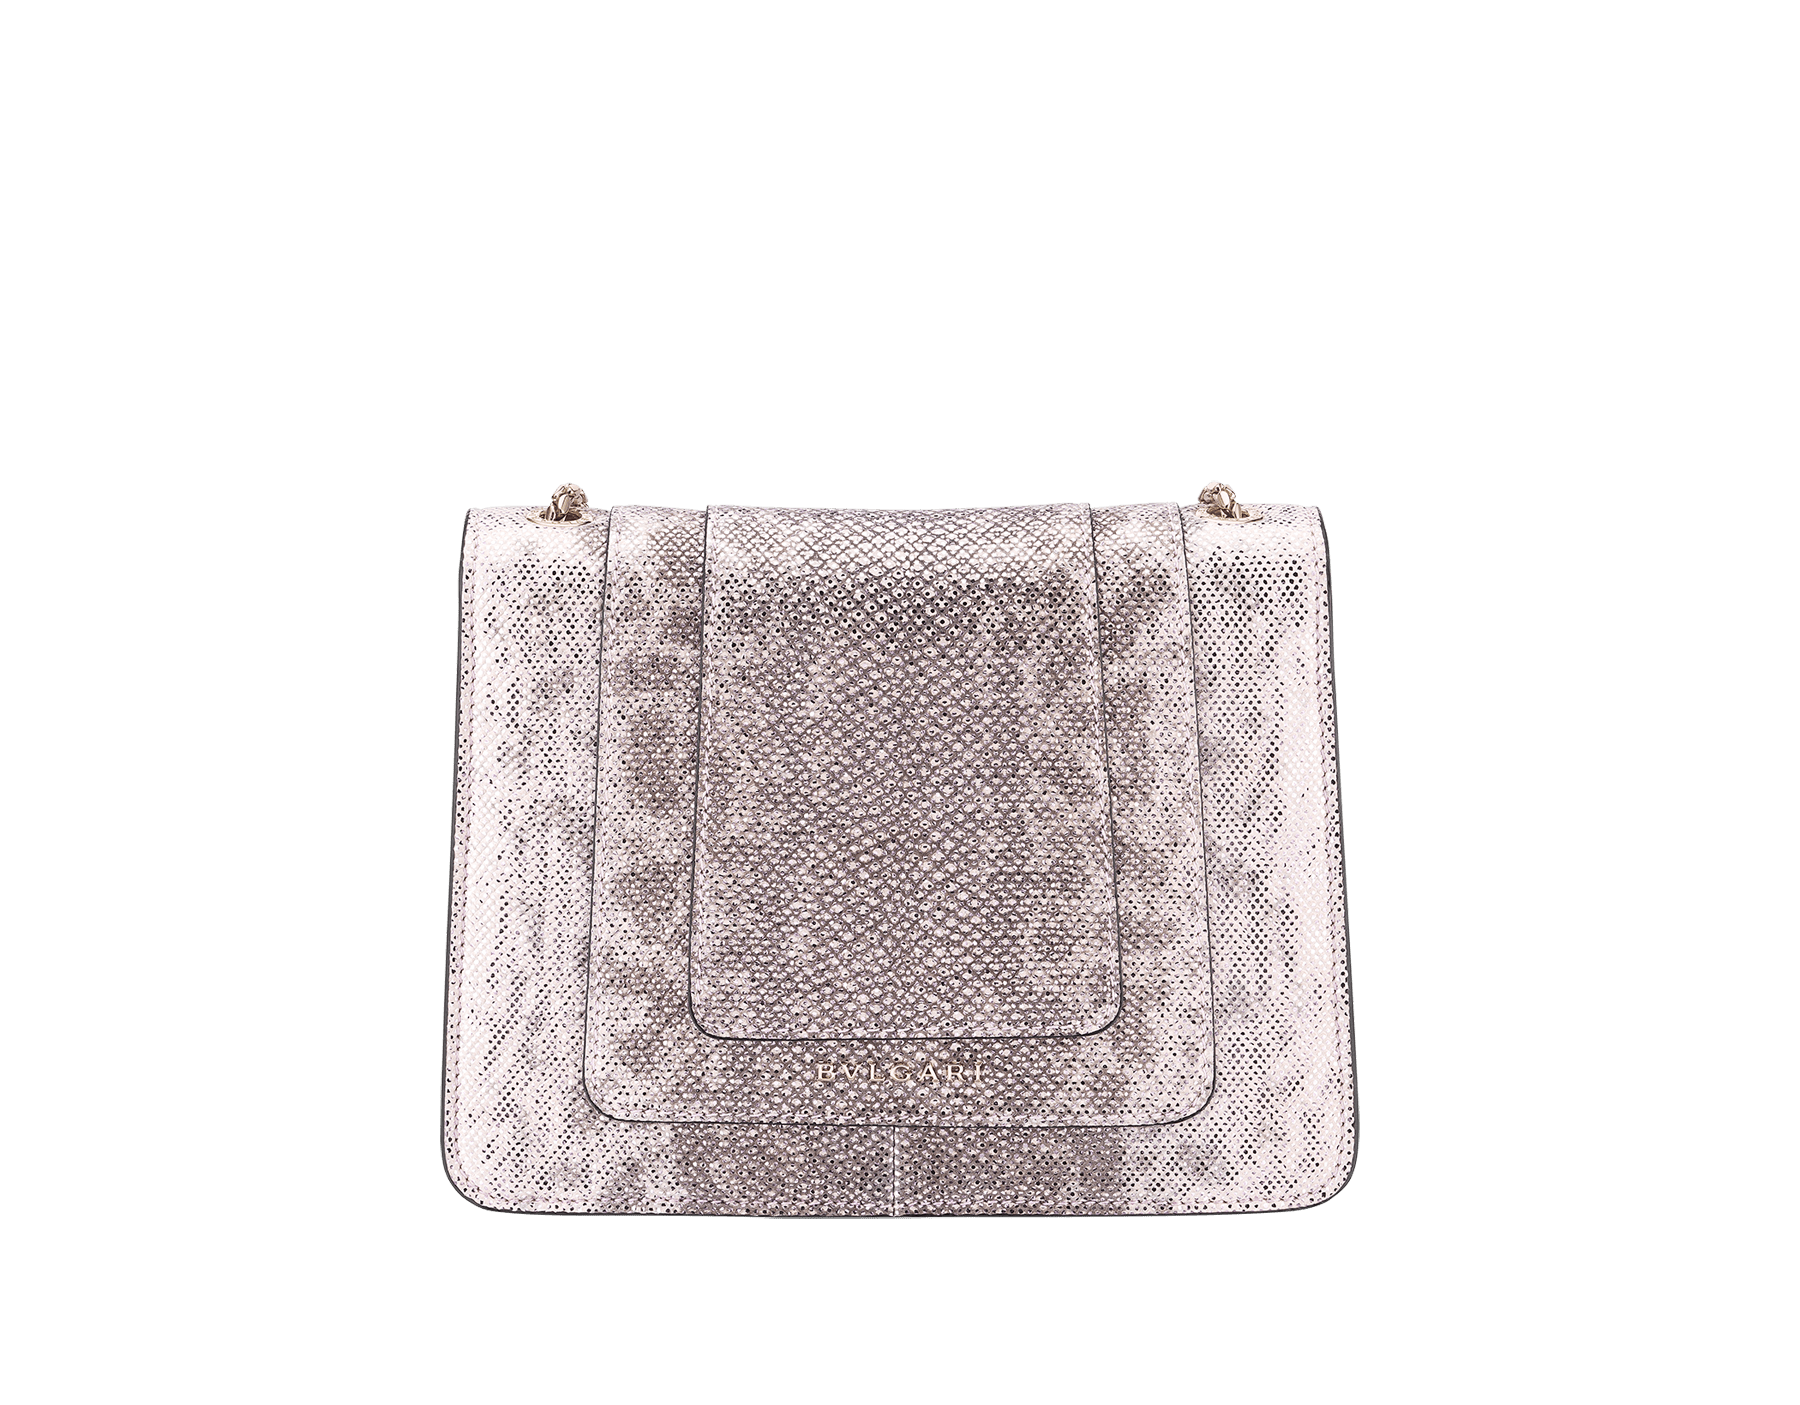 """Serpenti Forever"" crossbody bag in rosa di francia metallic karung skin. Iconic snakehead closure in light gold plated brass embellished with black and glitter rosa di francia enamel and black onyx eyes. 288781 image 4"